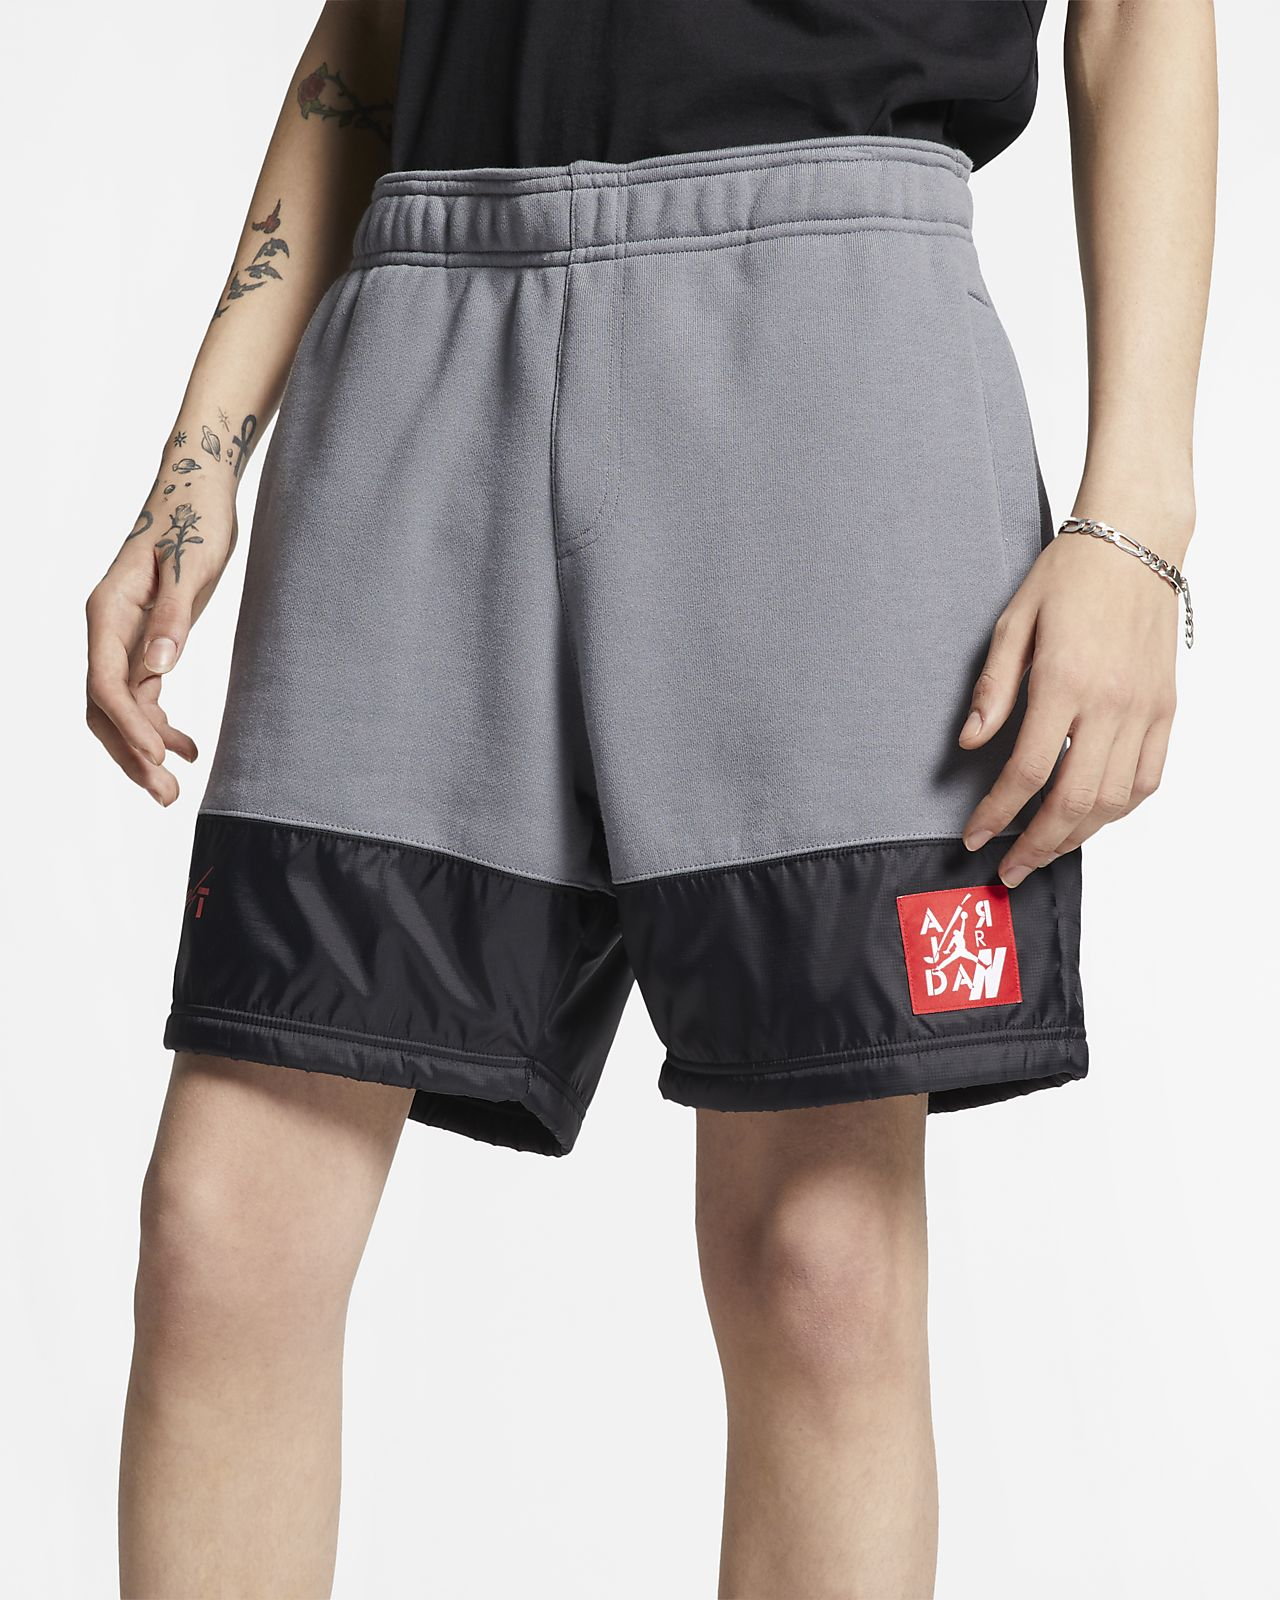 Jordan Legacy AJ4 Men's Fleece Shorts